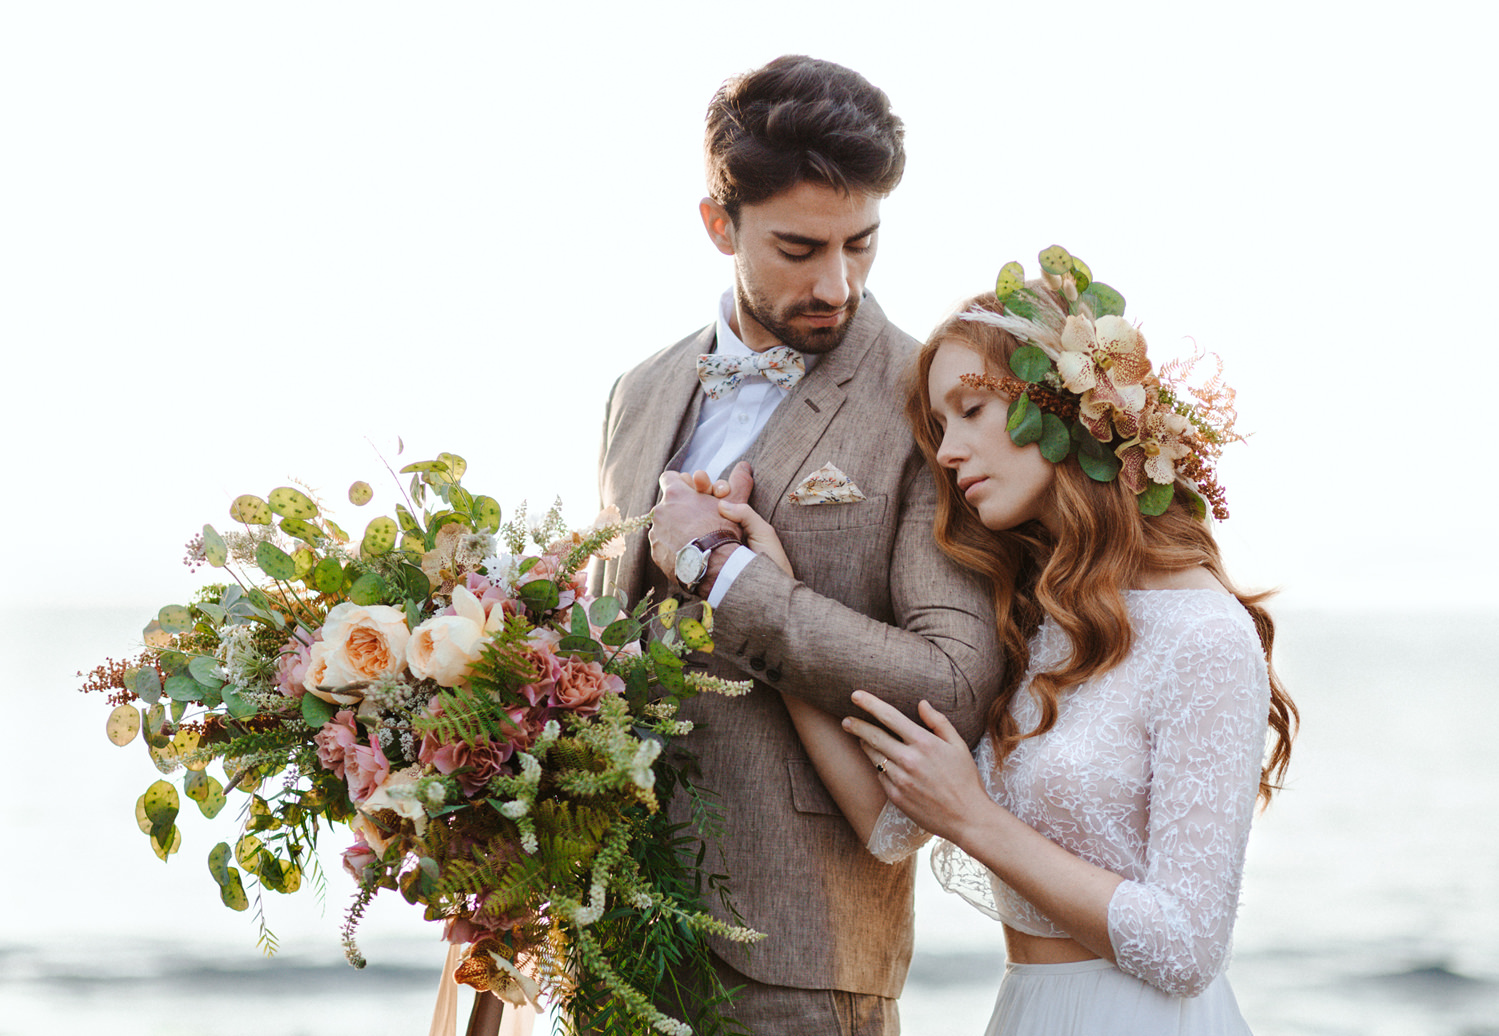 Romantic Puglia Elopement with organic-inspired floral arrangements | Photo: Camilla Anchisi